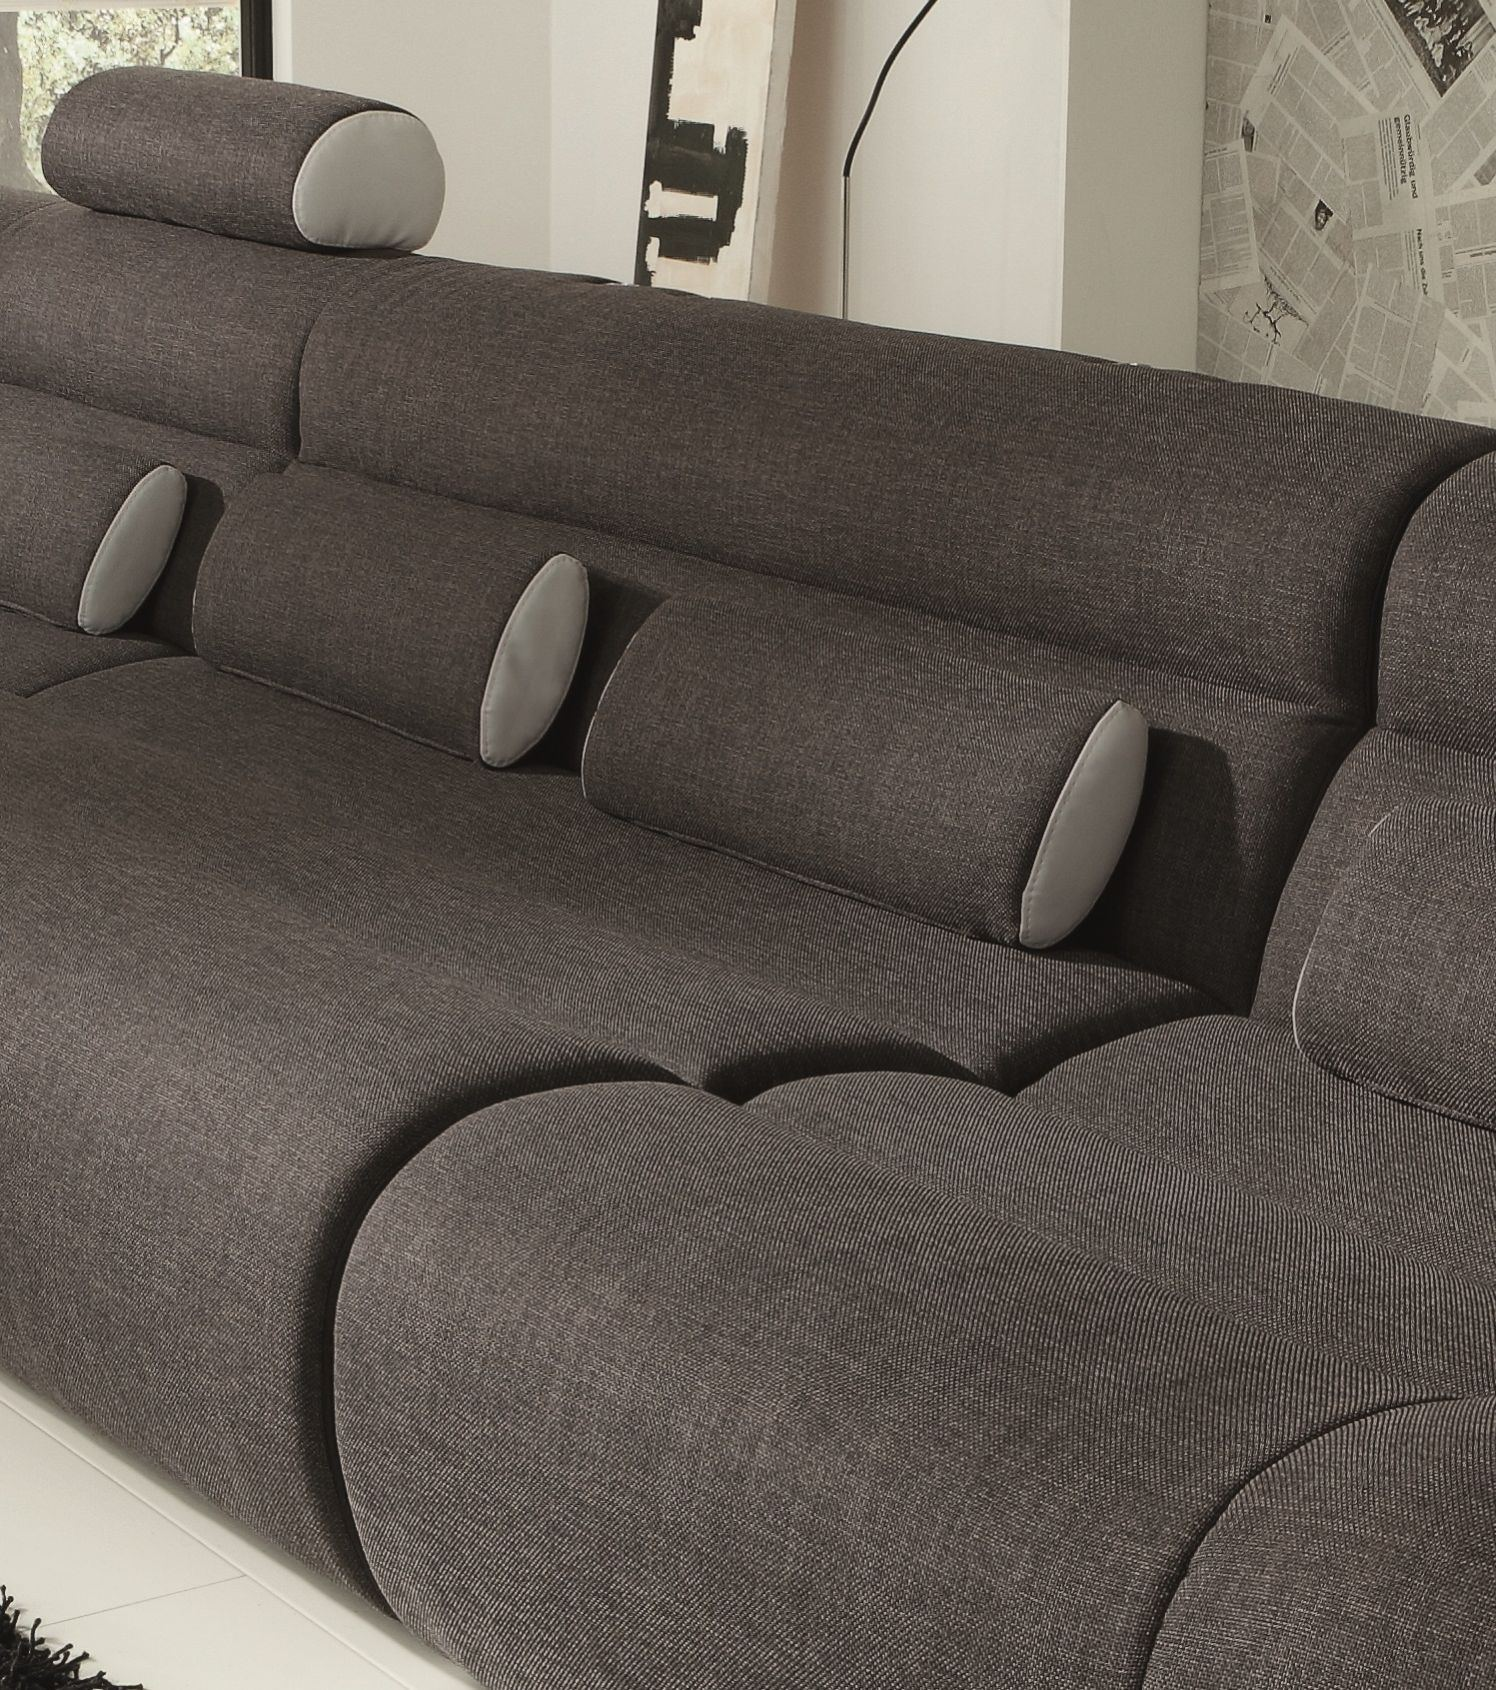 sofas ledersofa 4 sitzer elements three systemcouch sofas g nstig online kaufen. Black Bedroom Furniture Sets. Home Design Ideas